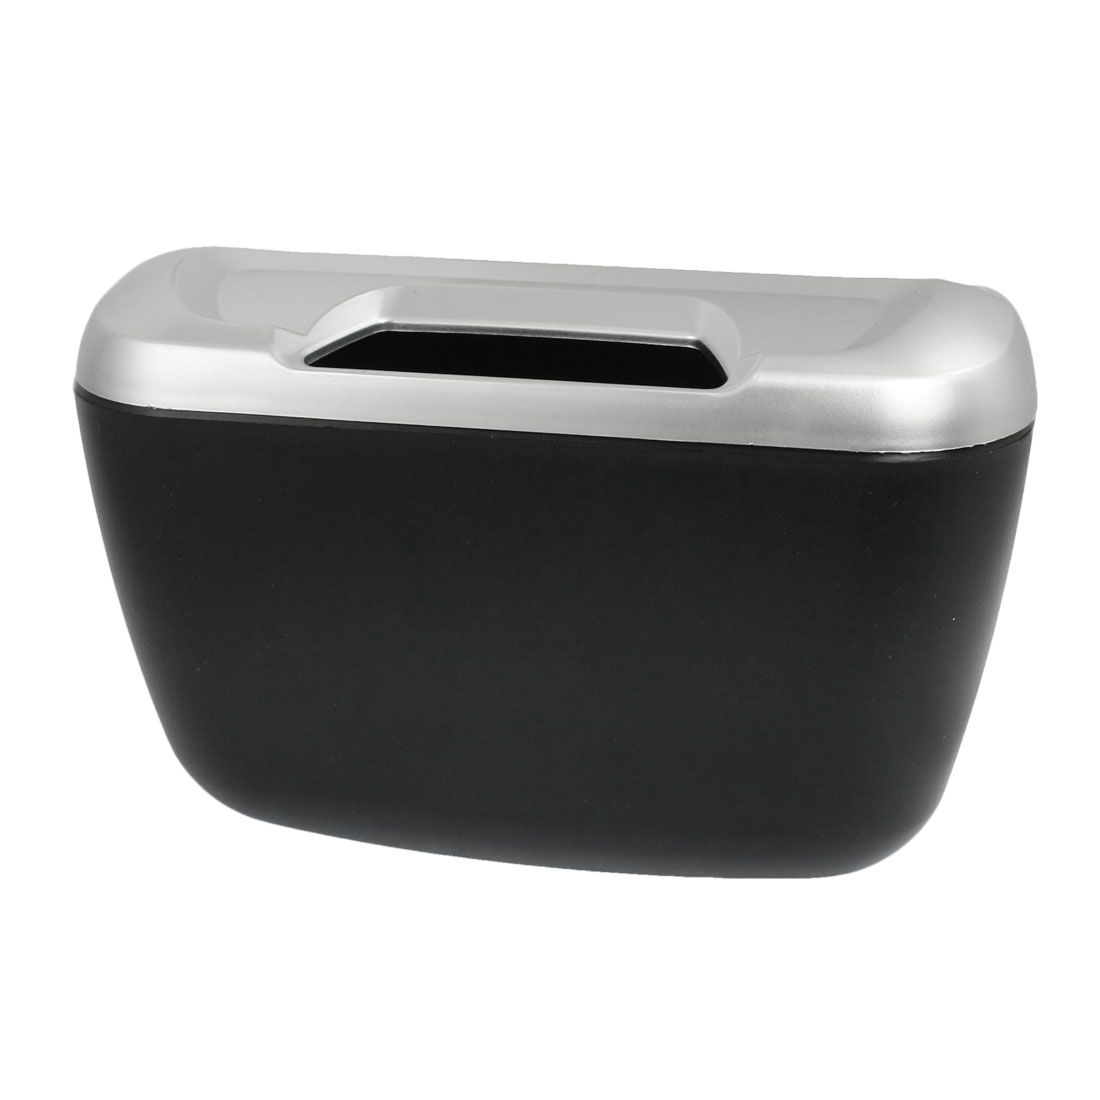 Black Silver Tone Plastic Compact Trash Can Garbage Bin for Car Auto